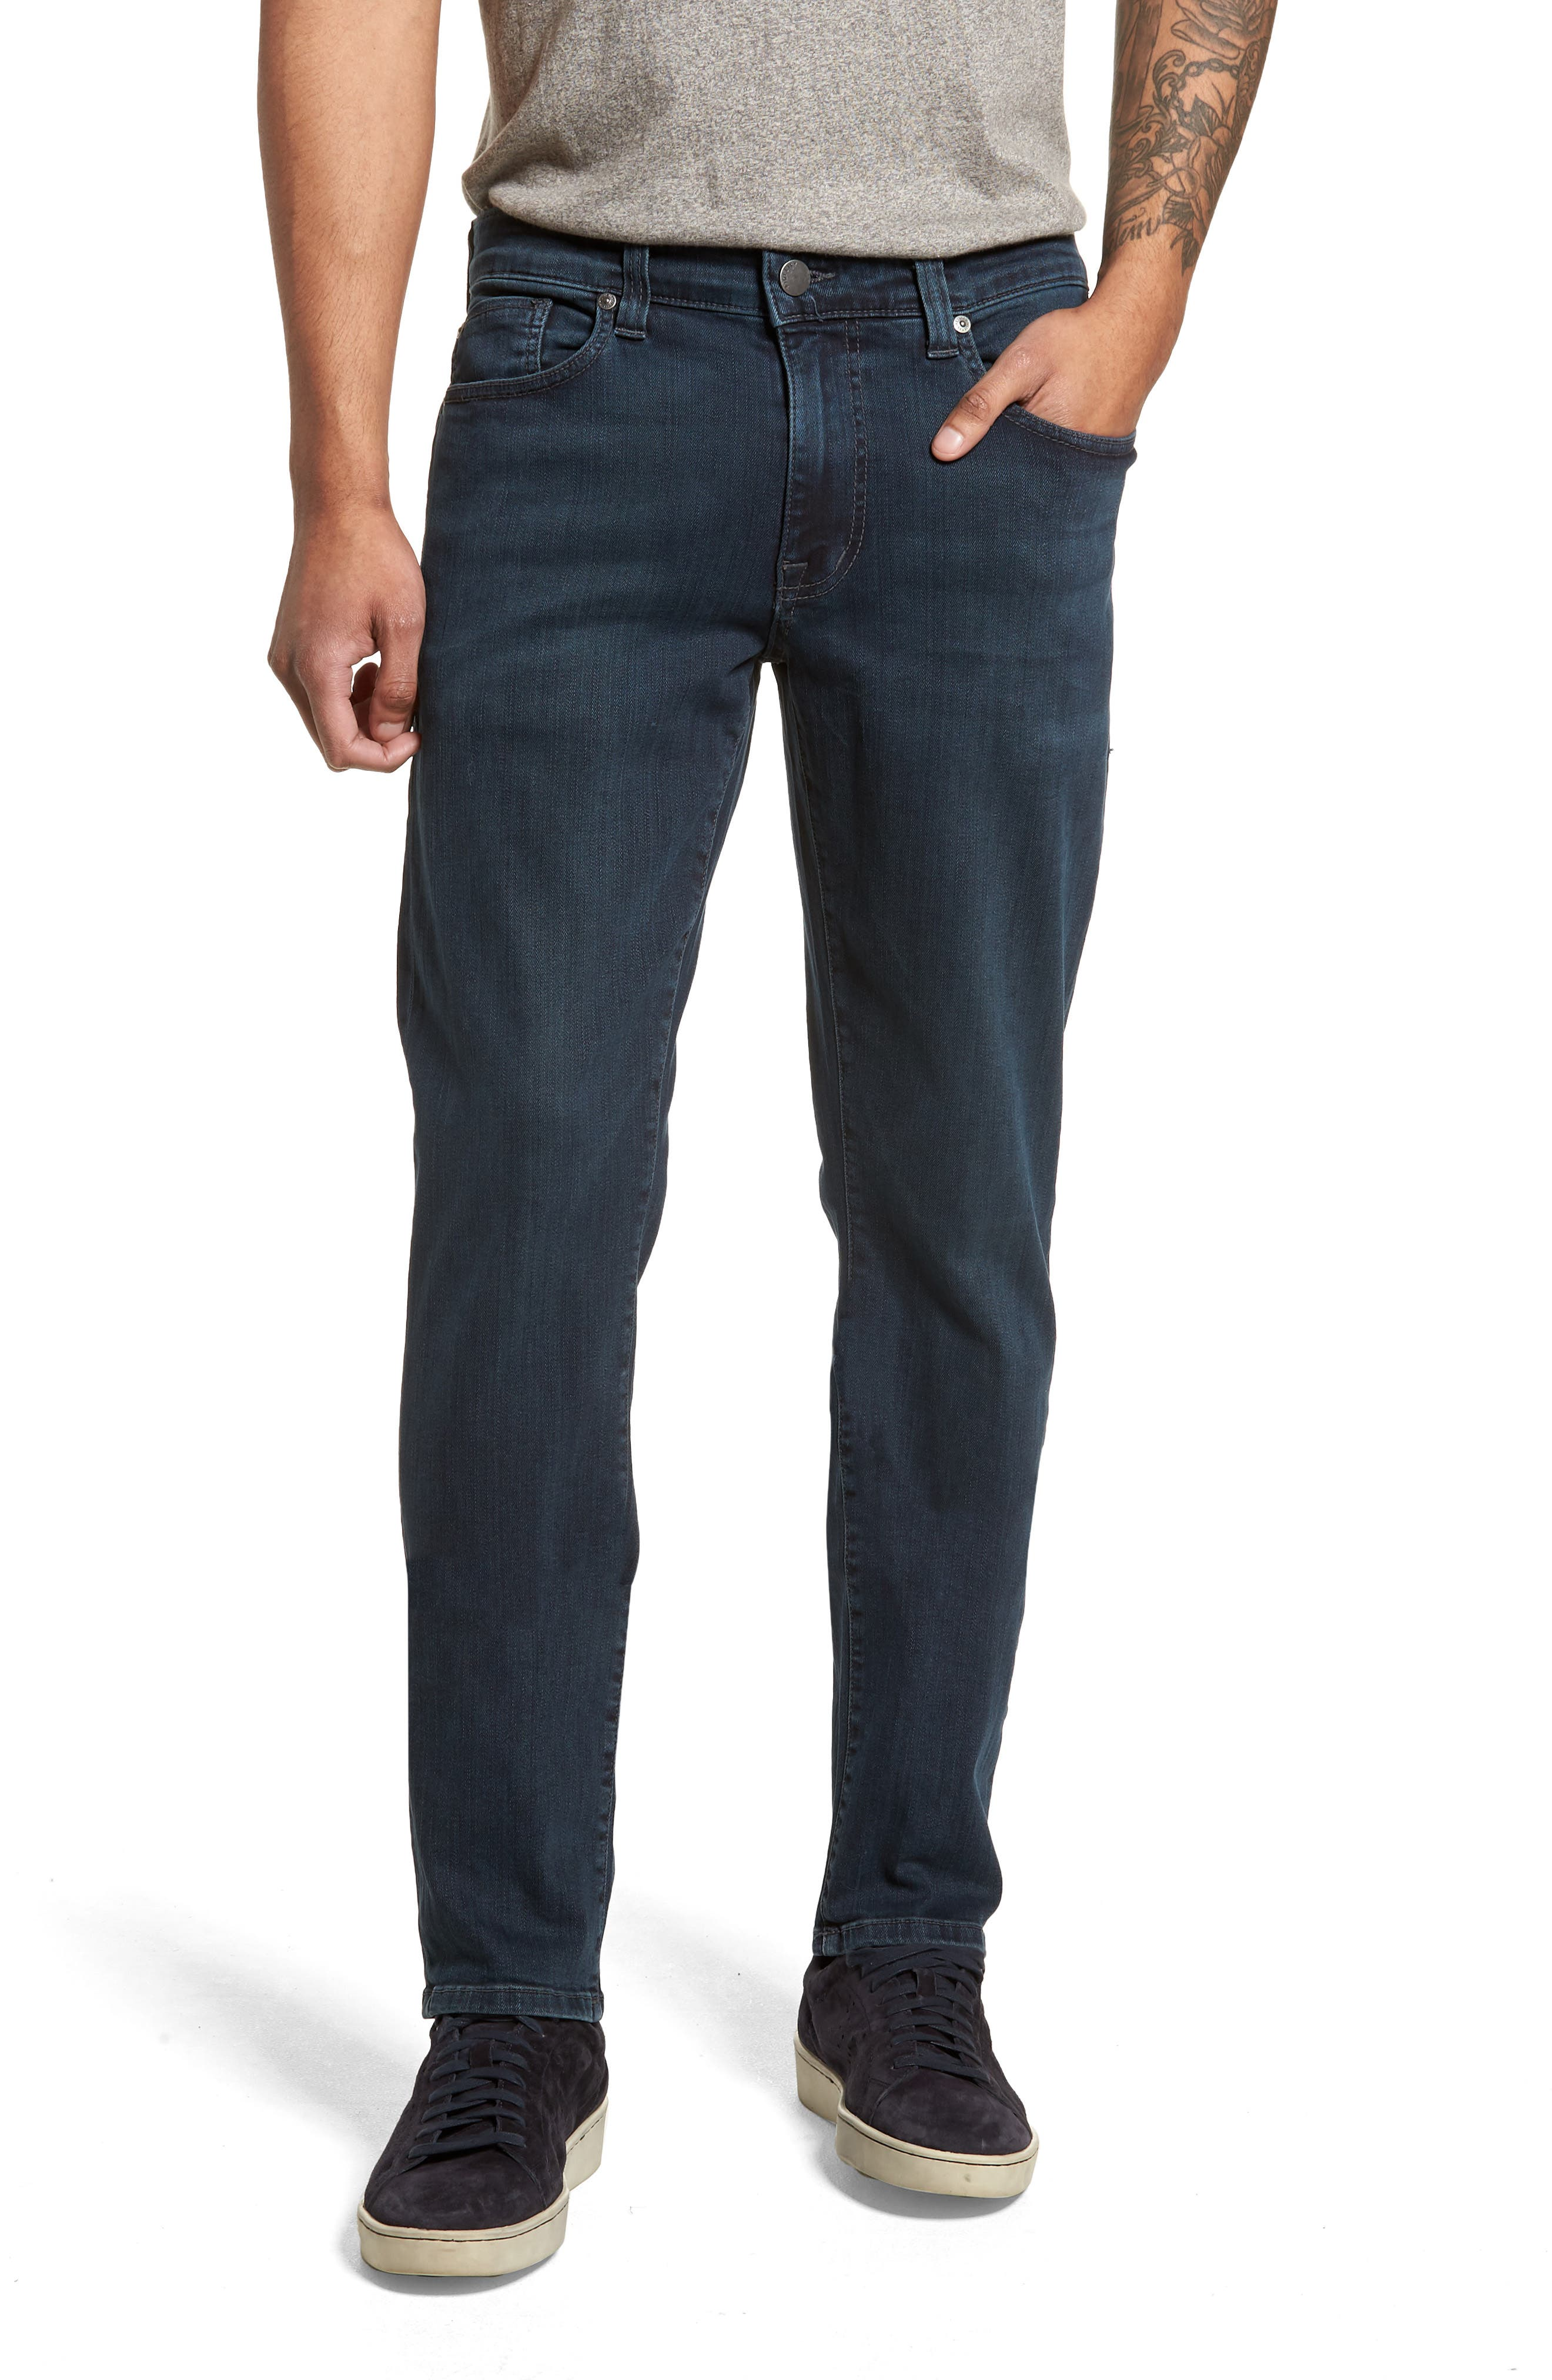 Torino Slim Fit Jeans,                         Main,                         color, Manchester